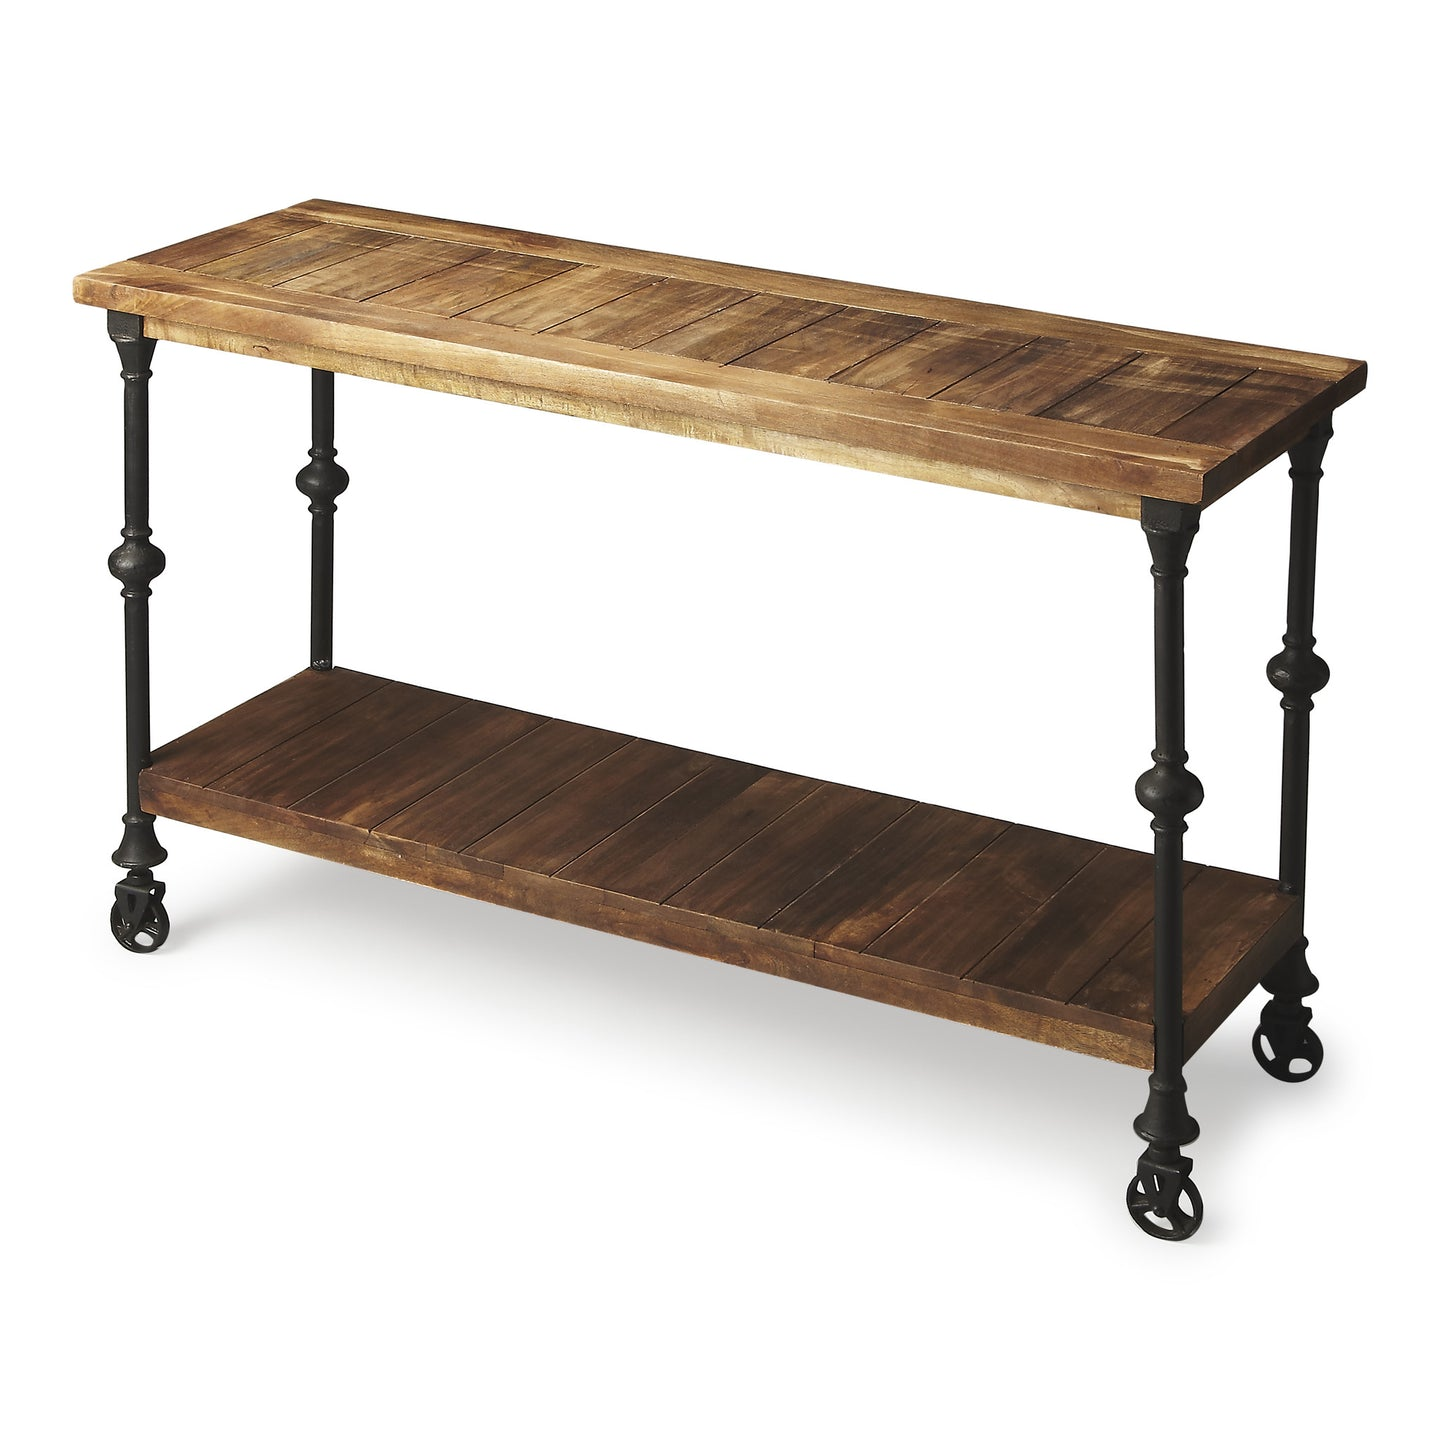 Fontainebleau Industrial Iron and Recycled Wood Chic Console Table by Butler